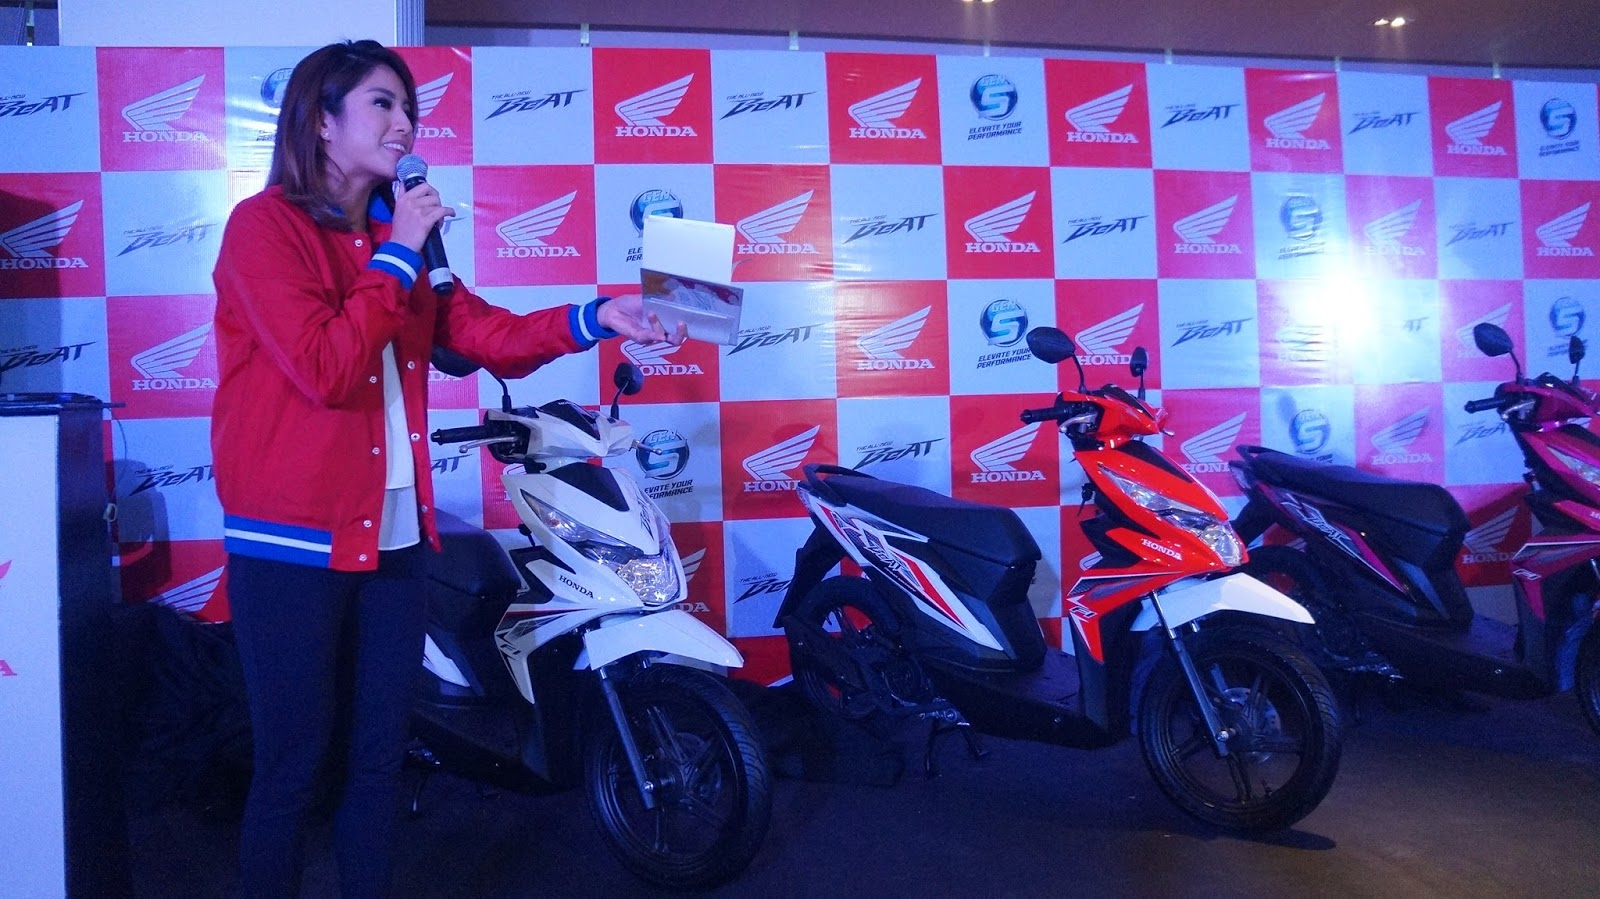 Honda Philippines Launches The All New Beat Scooters For Sporty Esp Cbs Iss 2017 Event Was Hosted By Gretchen Ho Who Is Also Active In Sports Activities And A Host Morning Tv Show At Umagang Kay Ganda Of Abs Cbn